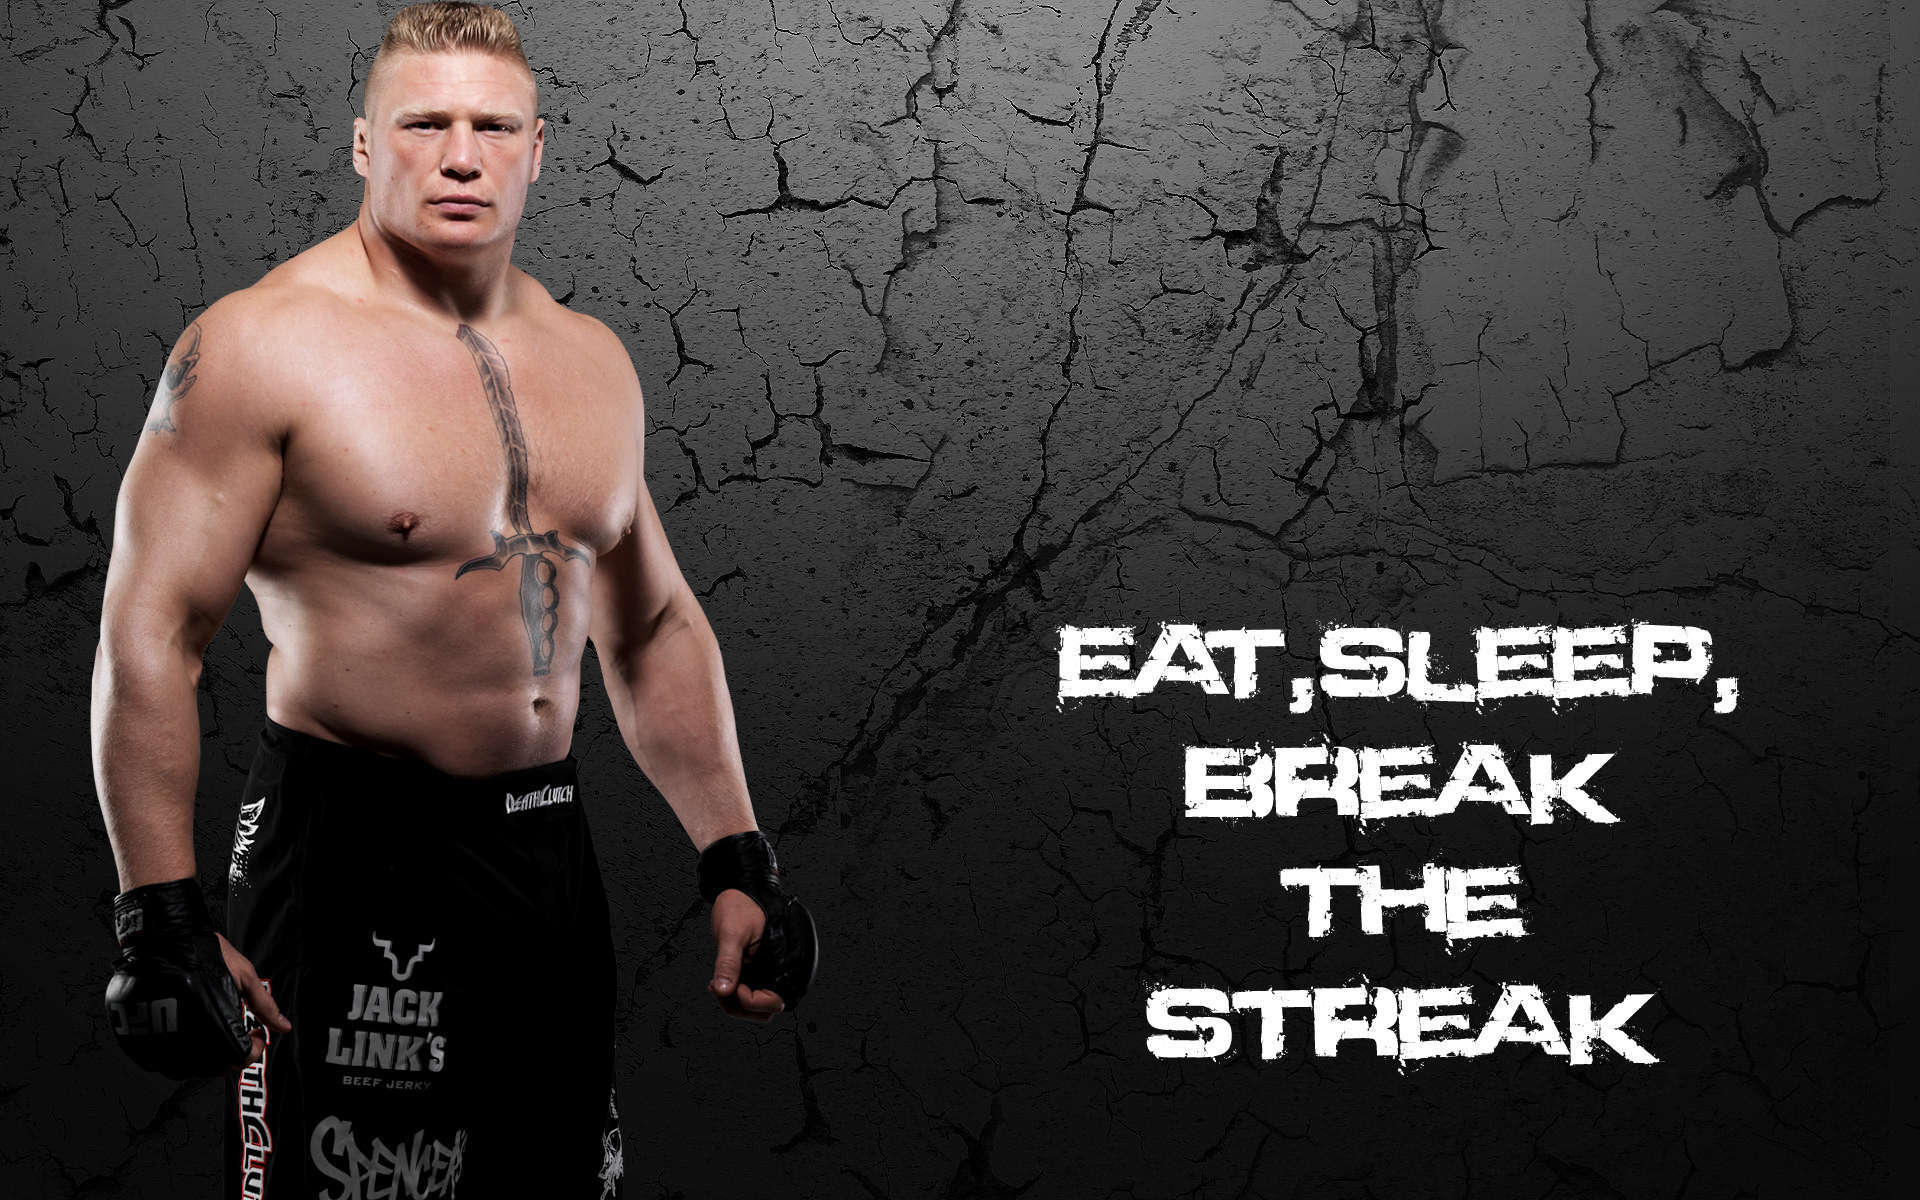 wwe 2015 champion brock lesnar 2015 hd wallpaper download 1920x1200